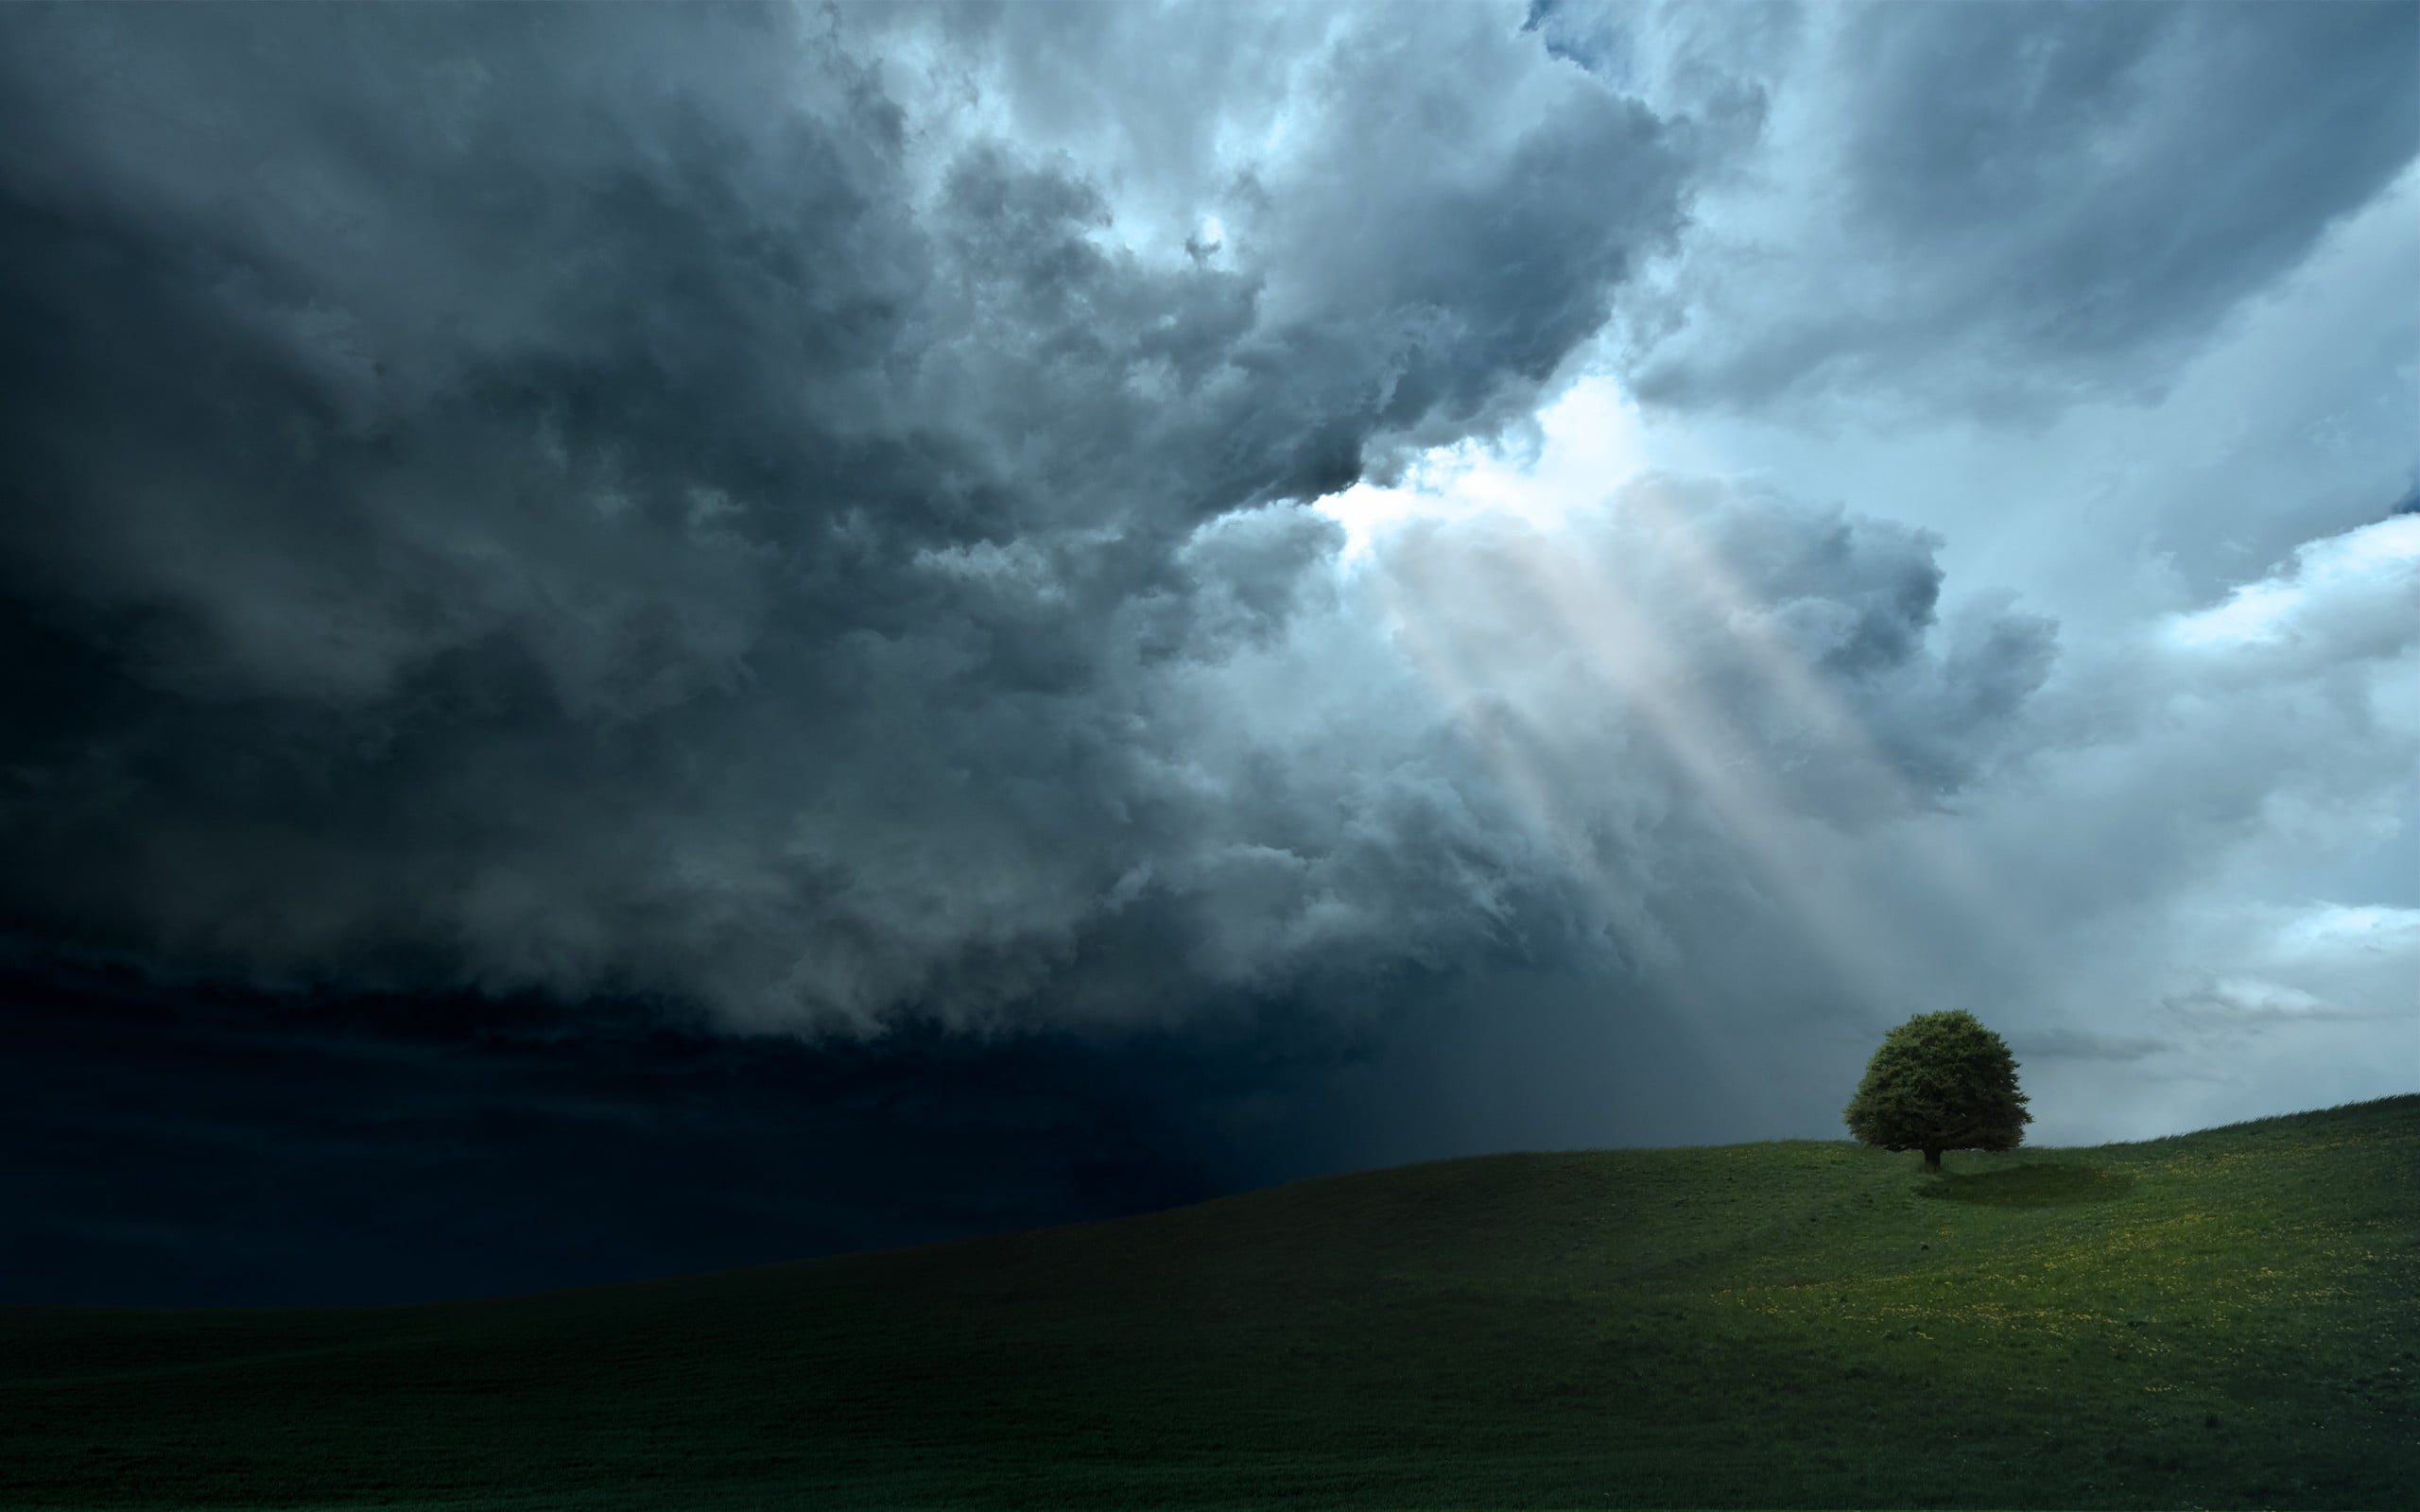 tree under dark clouds